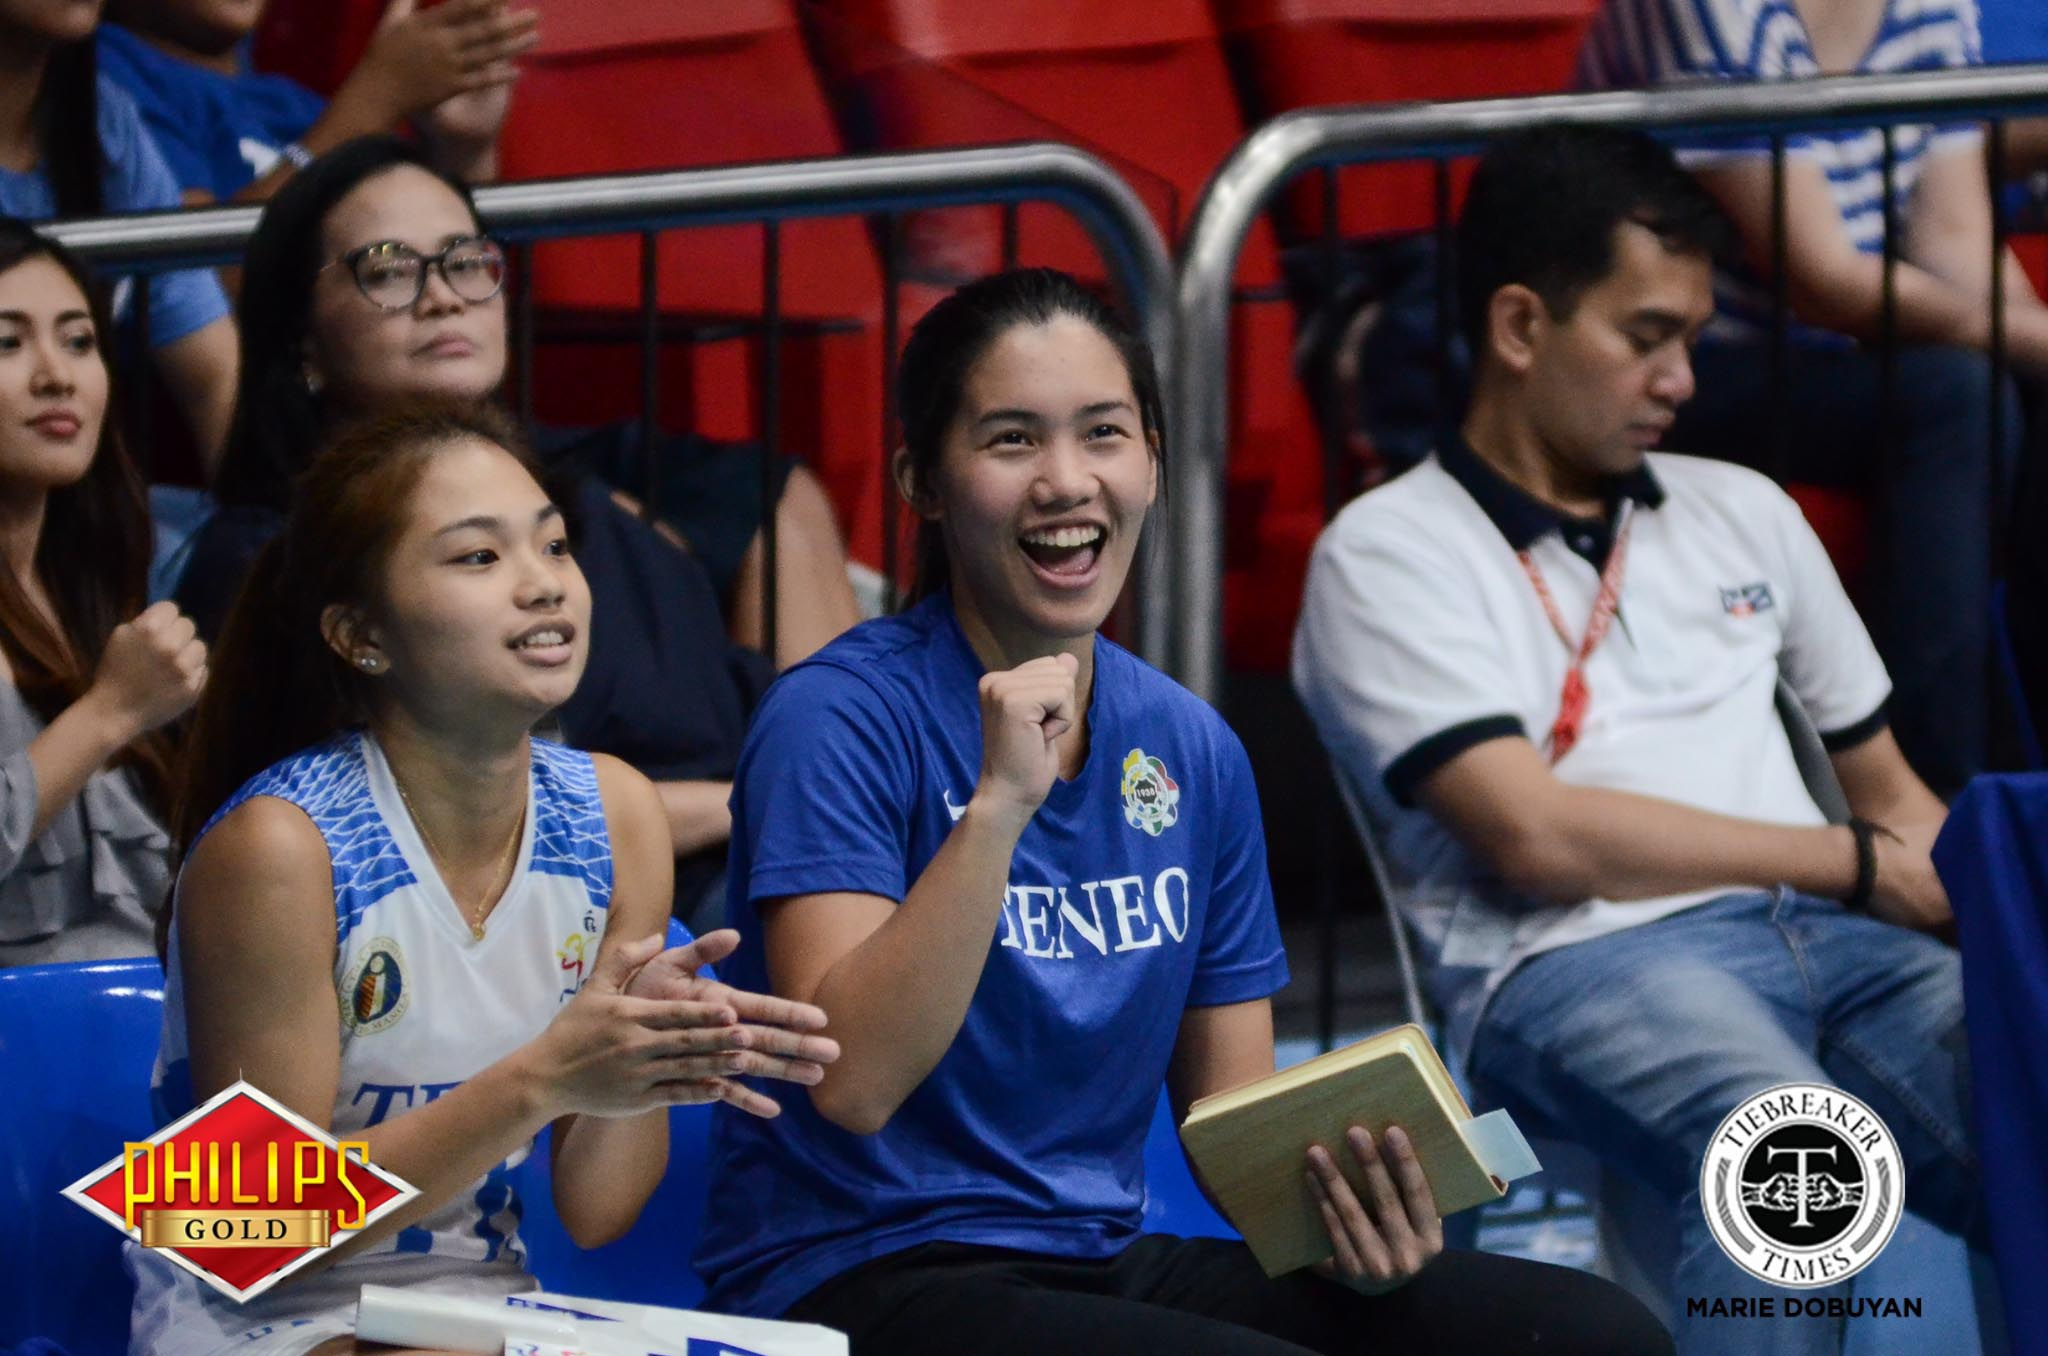 Philippine Sports News - Tiebreaker Times Coach Jia sees promise in Ateneo's setters ADMU News PVL Volleyball  Jia Morado Ateneo Women's Volleyball 2017 PVL Women's Collegiate Conference 2017 PVL Season